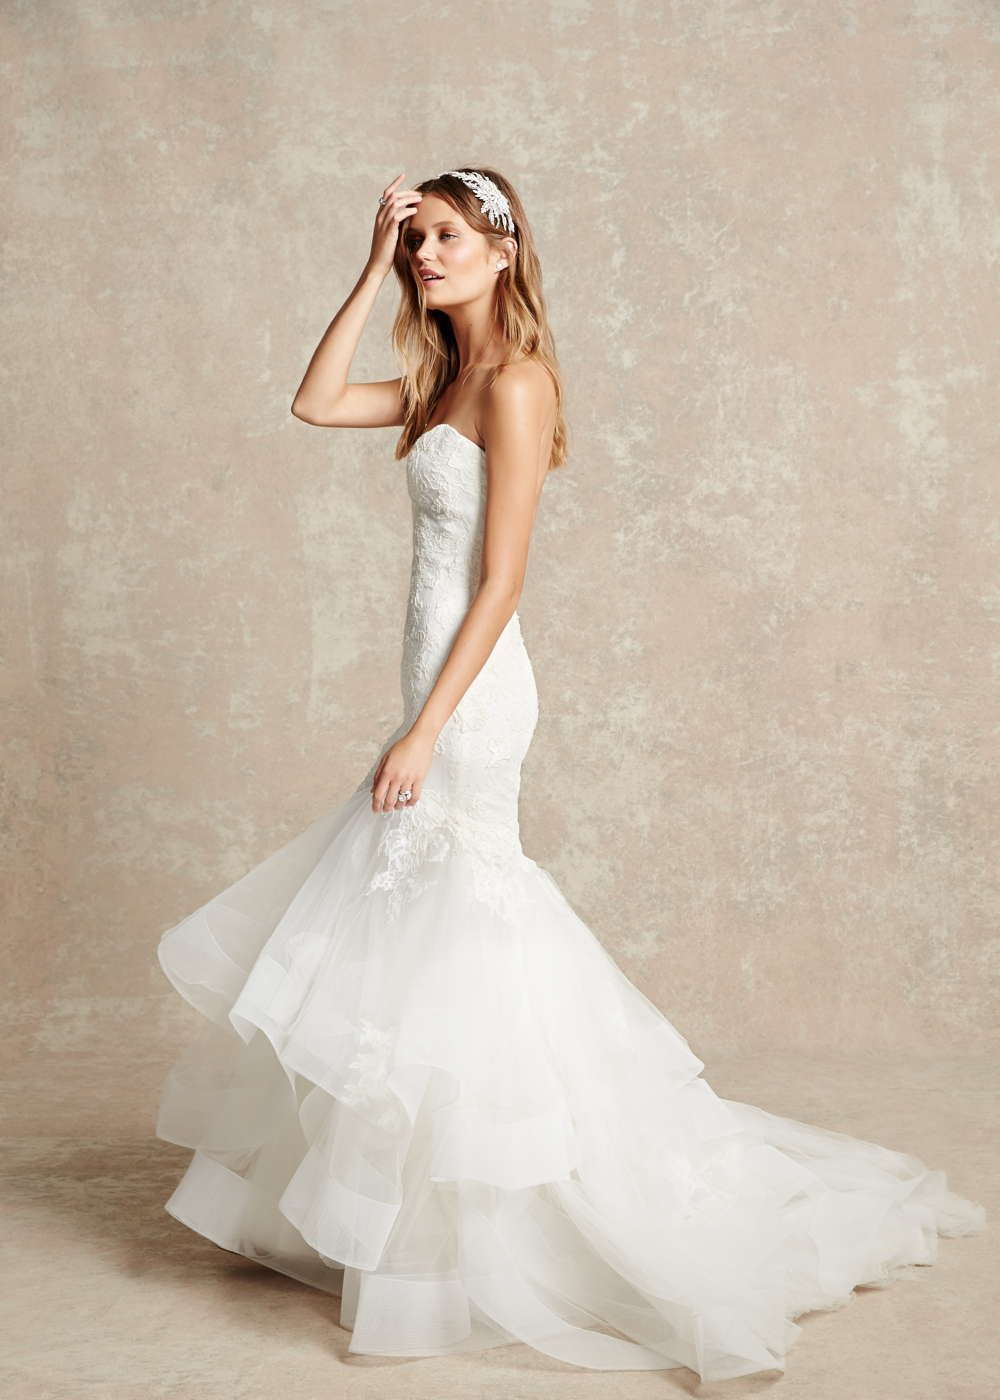 BLISS by Monique Lhuillier Spring  Wedding Dresses  Monique